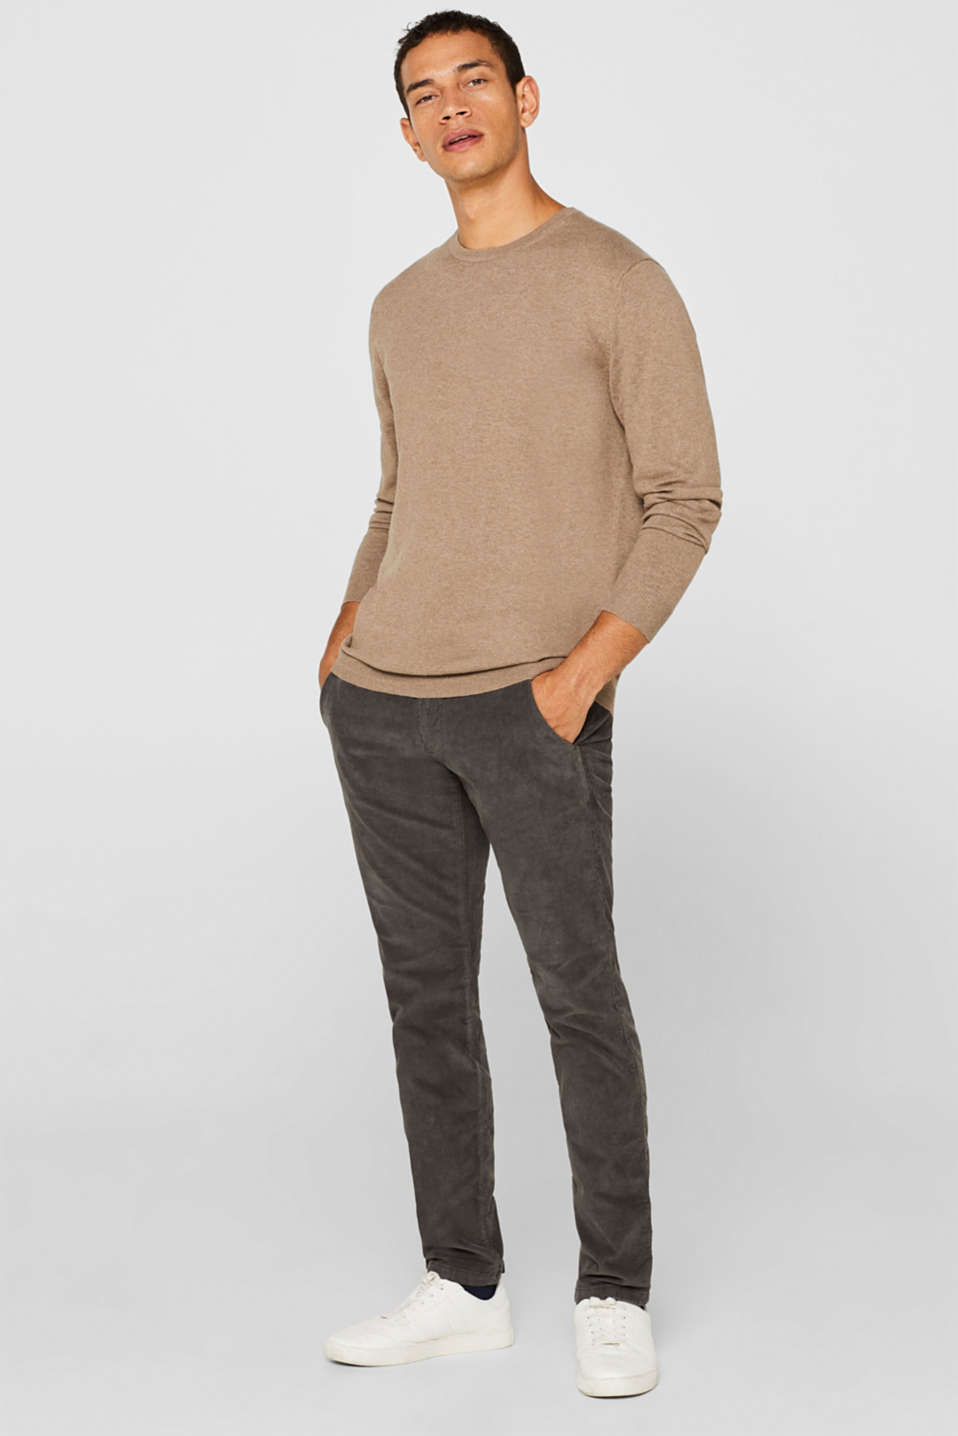 With cashmere: Basic style jumper, TAUPE, detail image number 1